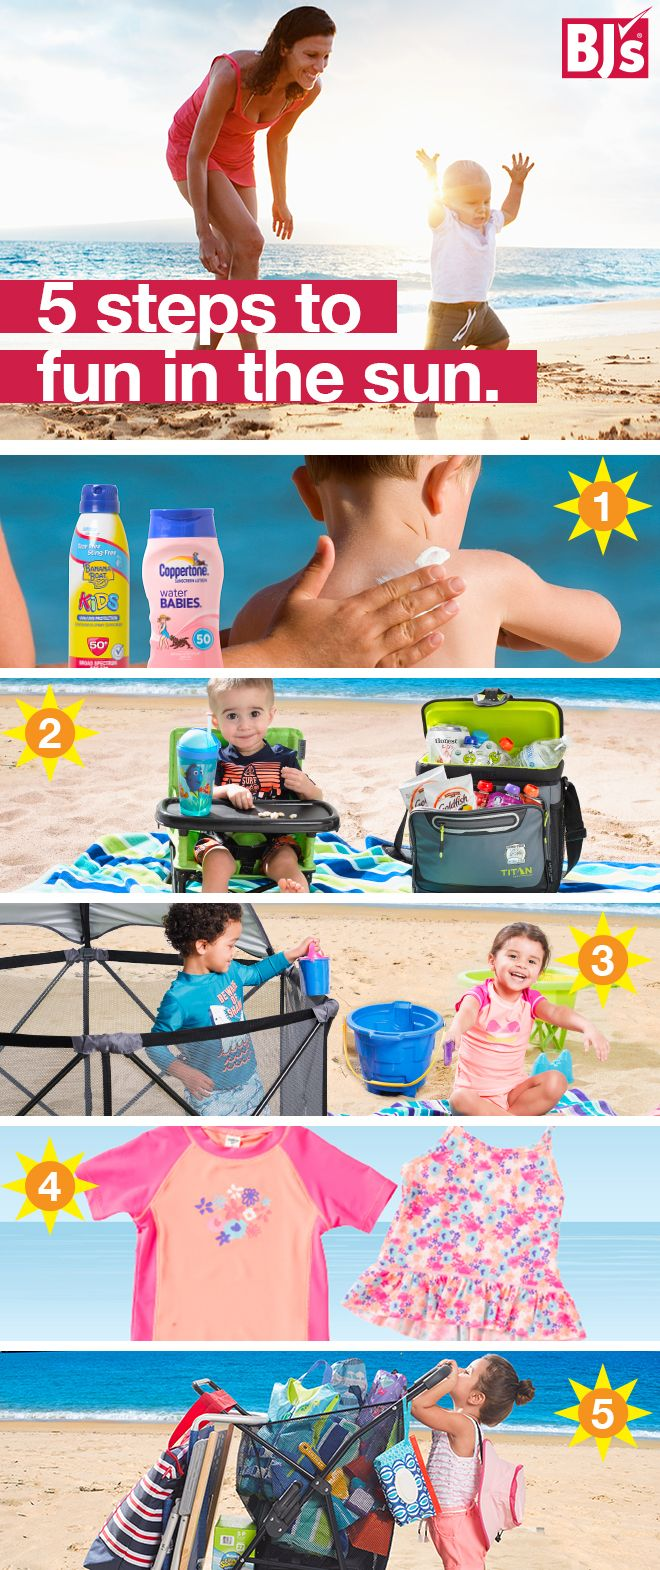 Who's ready to have fun in the sun with their little ones? Here's your go-to guide for beach days with baby: http://bit.ly/bjs-beach-day. Now, gather up your beach supplies, swimmies, sunscreen and snacks, and head to the ocean for a day of family fun.